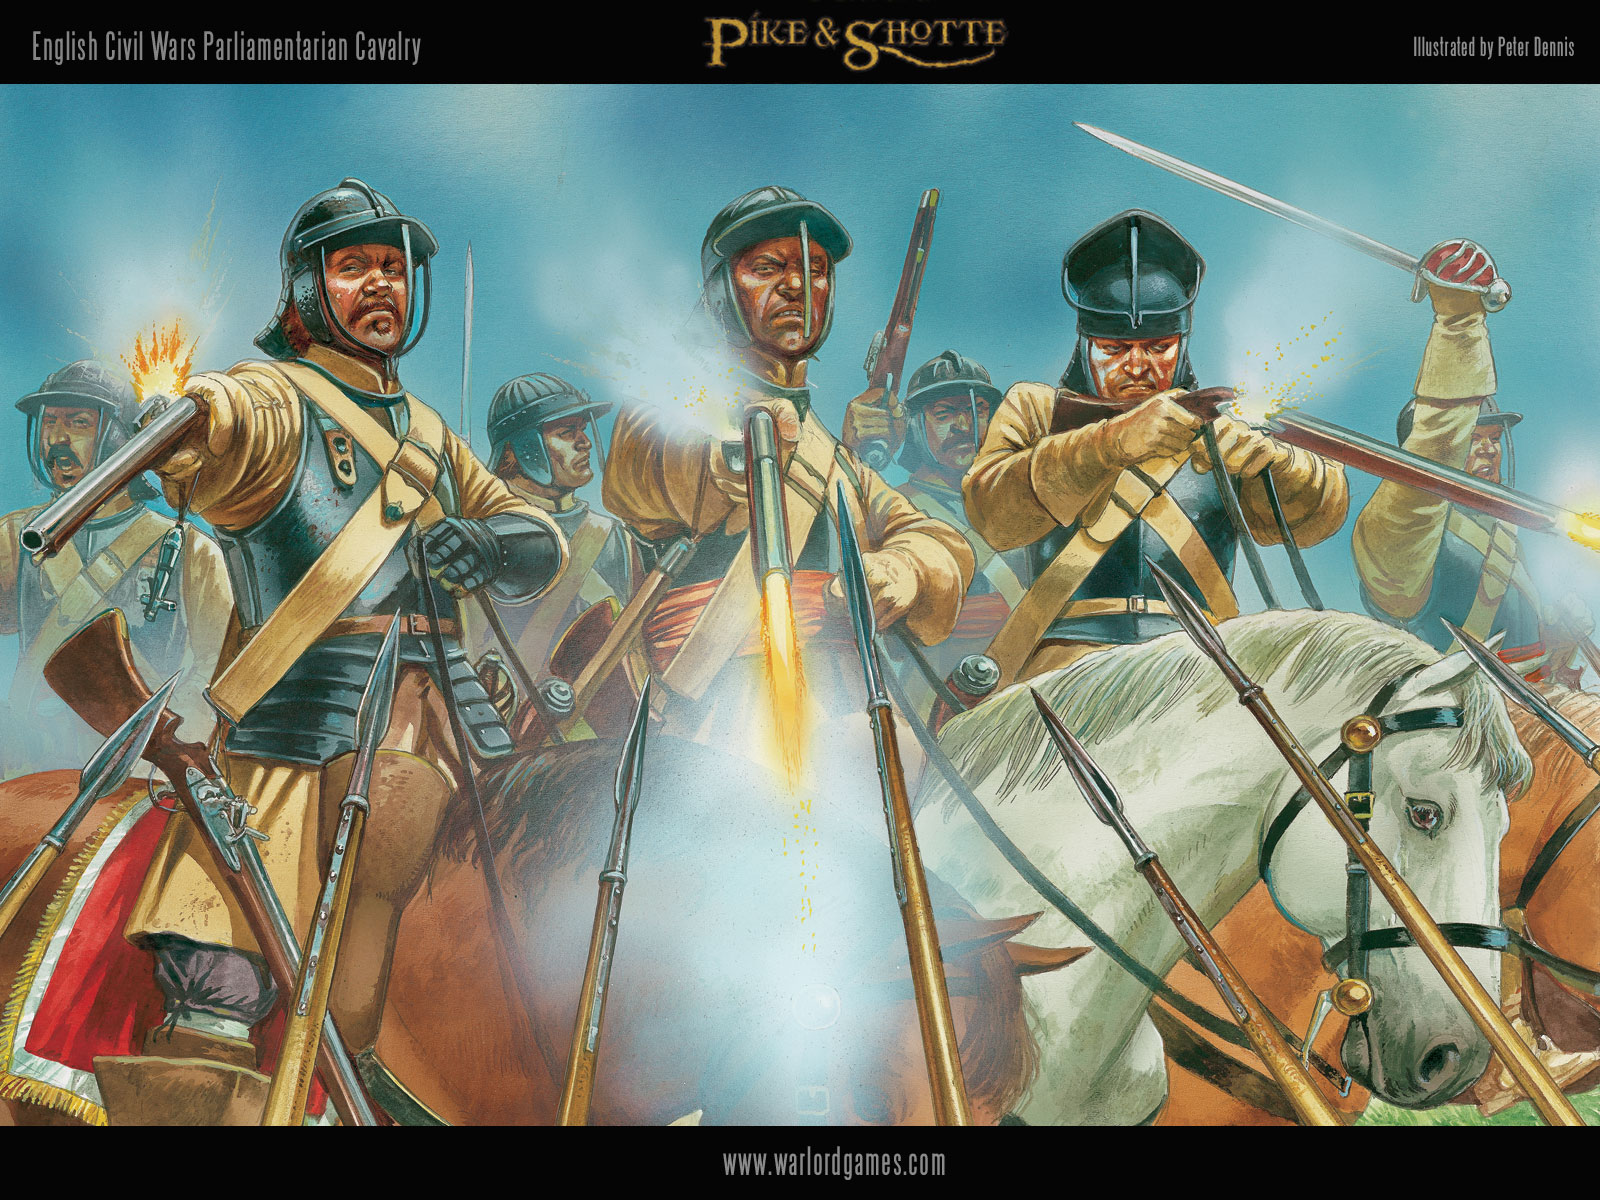 Illustrations P&S ECW-Parliament-Cavalry-wallpaper